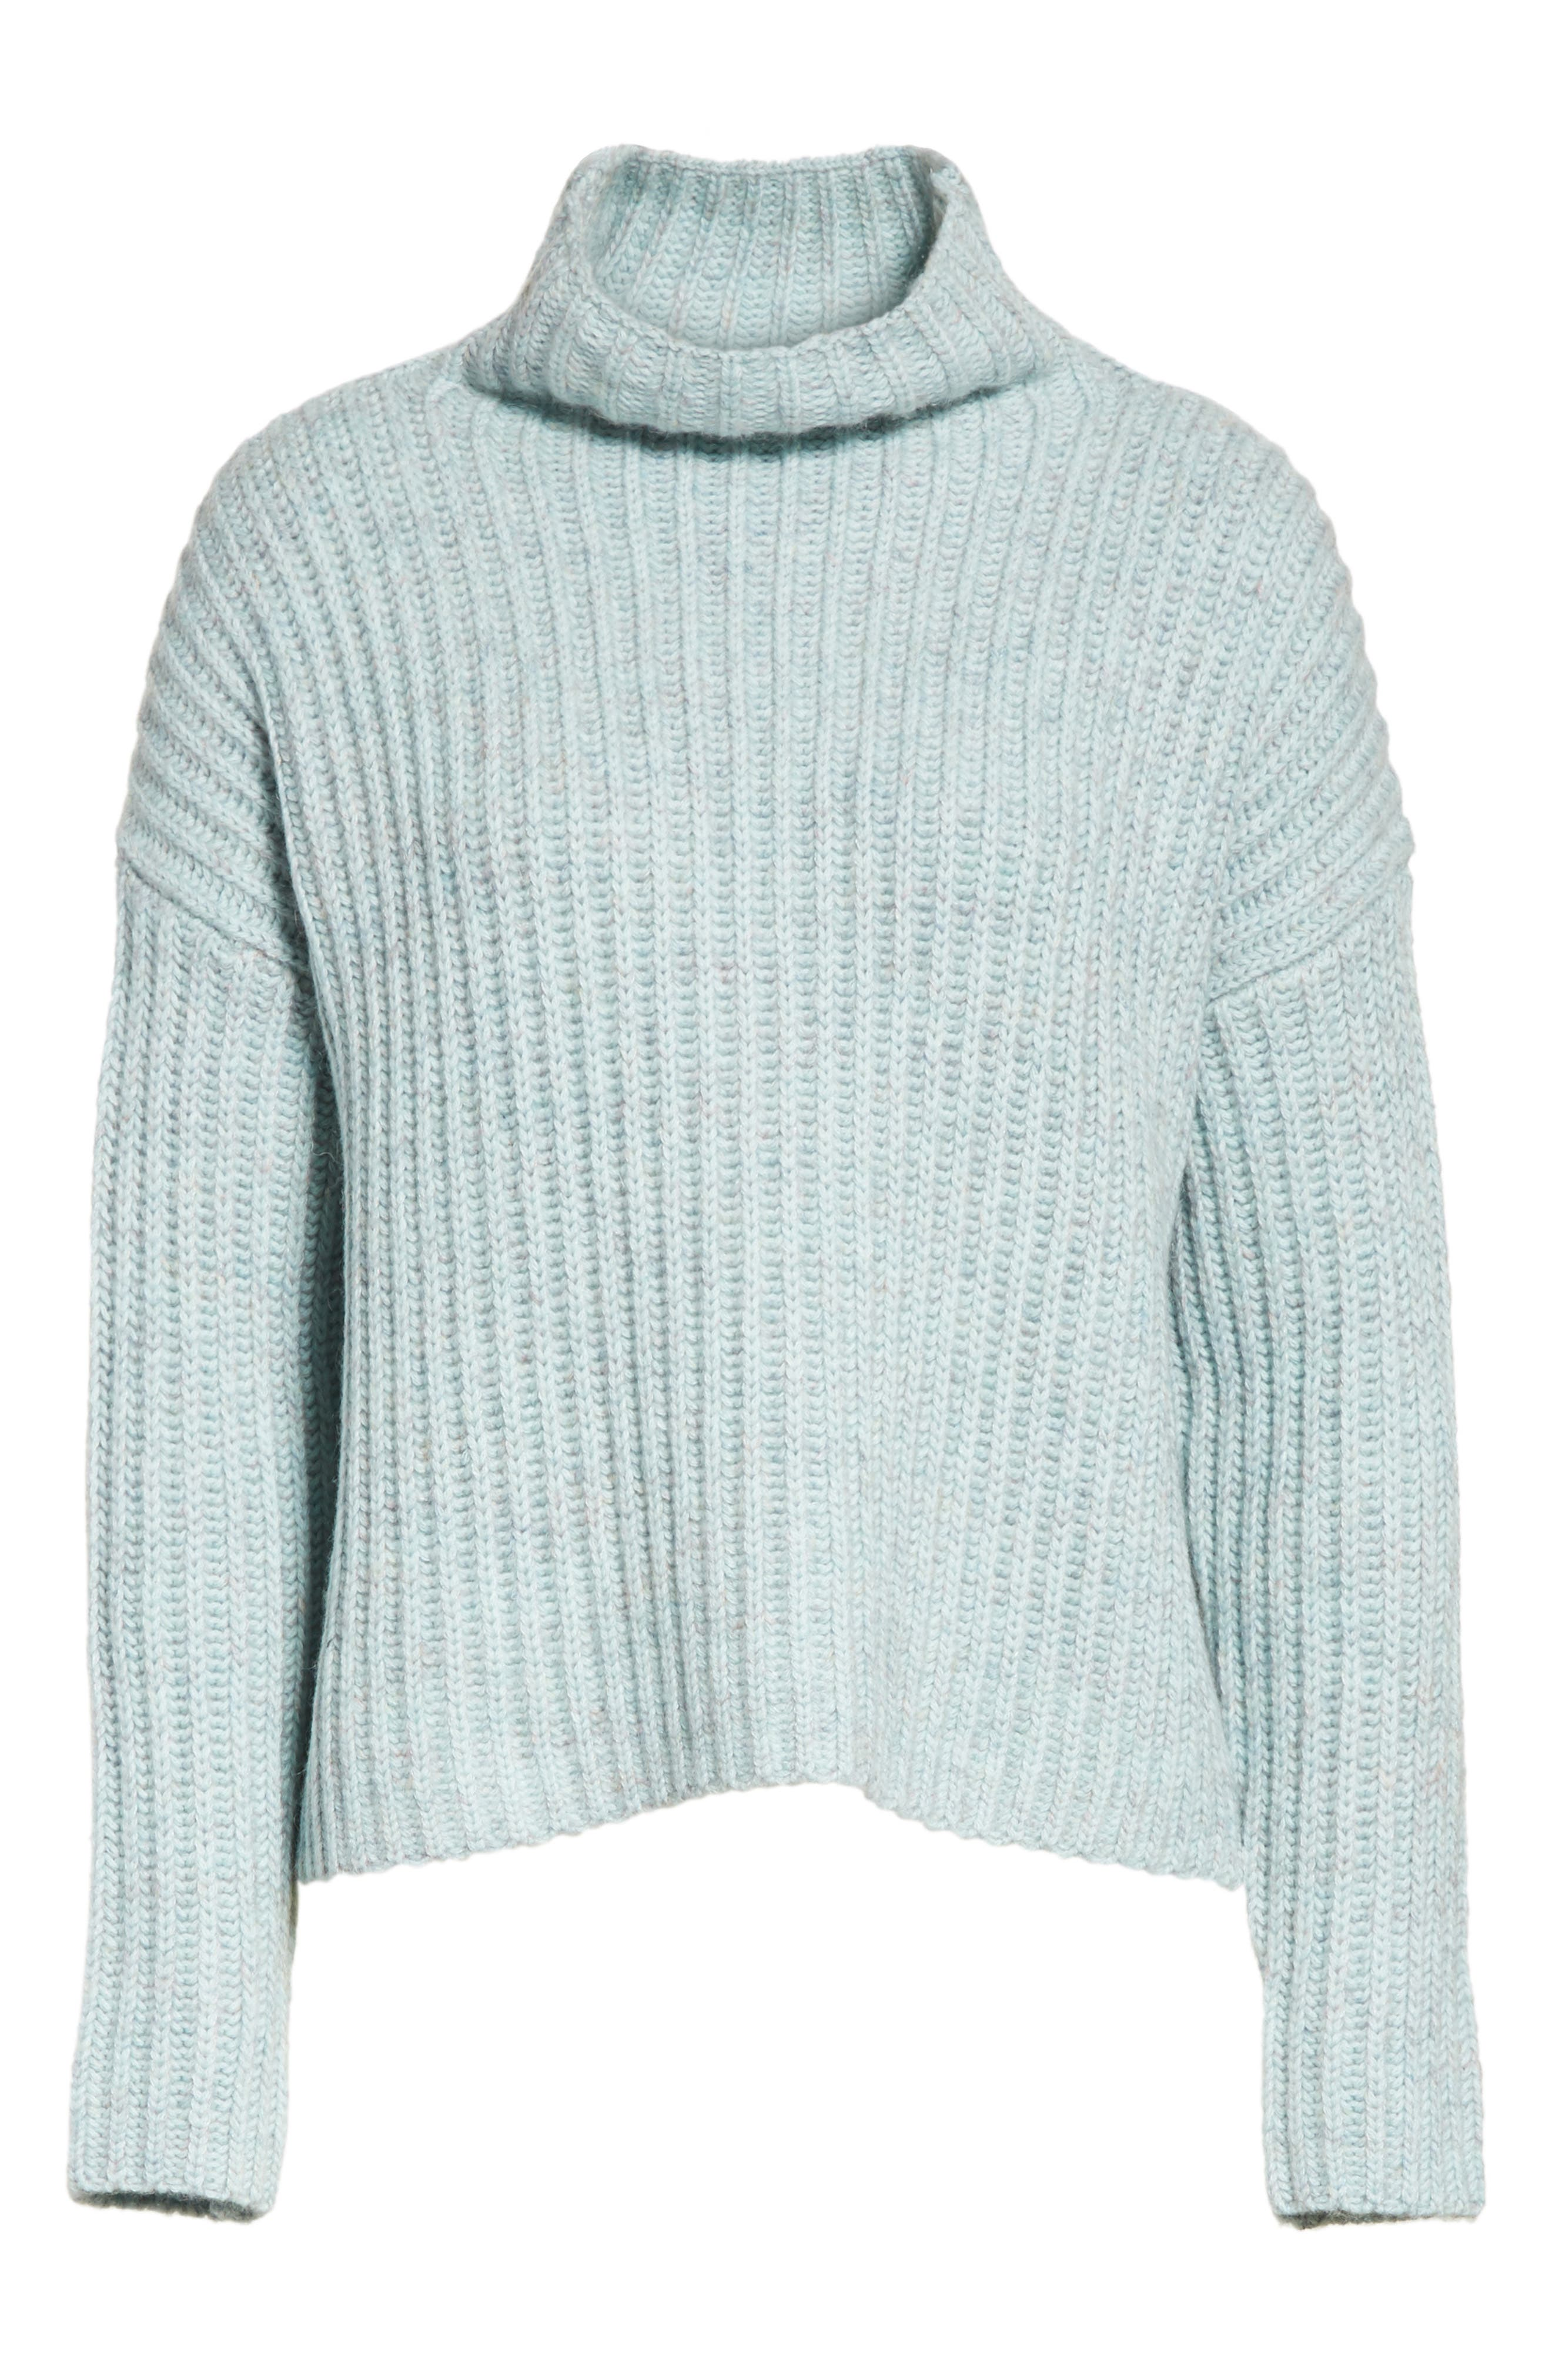 Ribbed Turtleneck Sweater,                             Alternate thumbnail 6, color,                             Tourmaline Heather